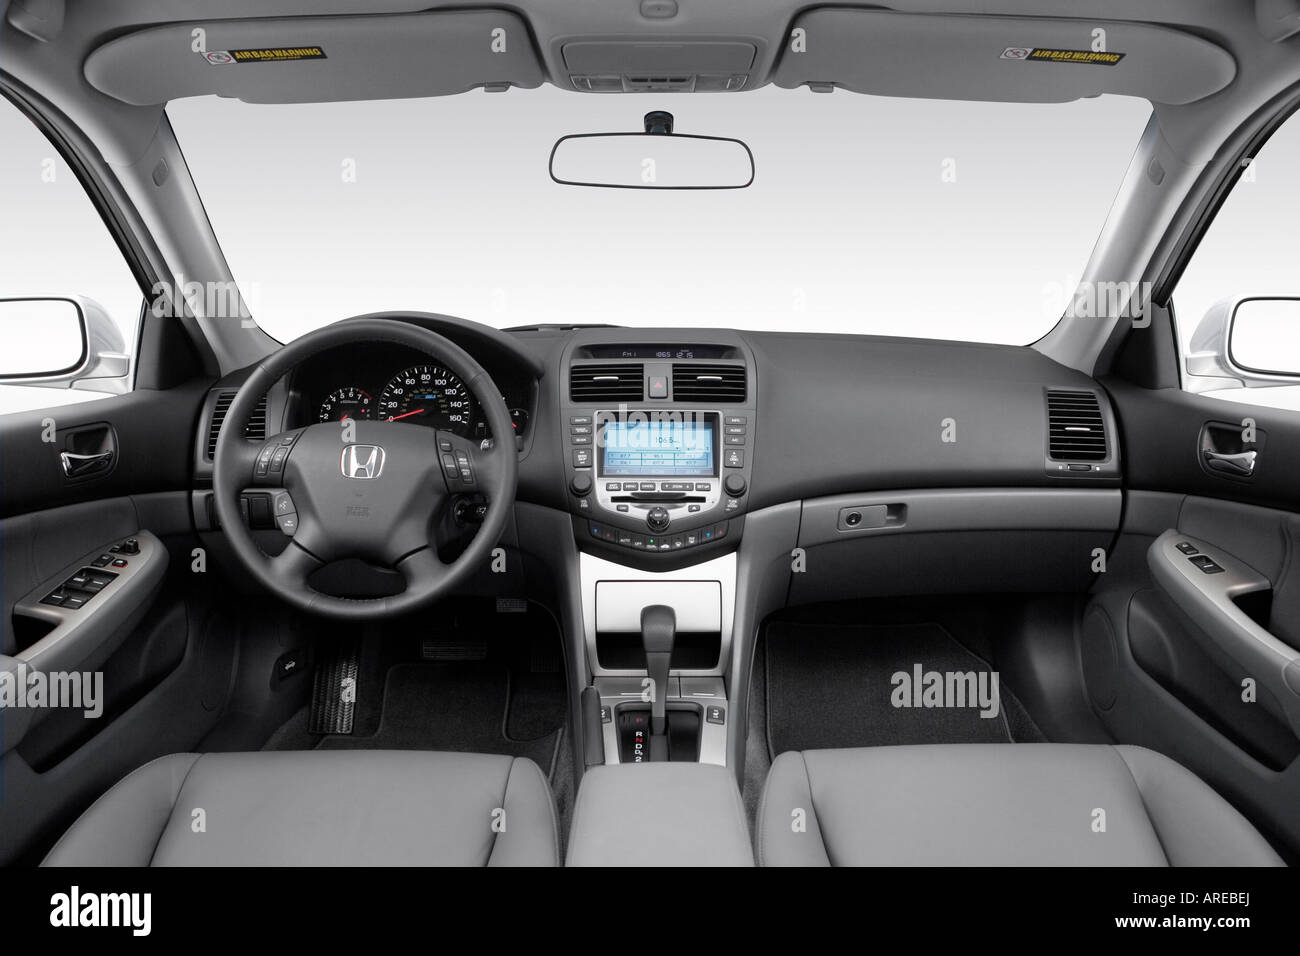 2006 honda accord hybrid in silver dashboard center. Black Bedroom Furniture Sets. Home Design Ideas